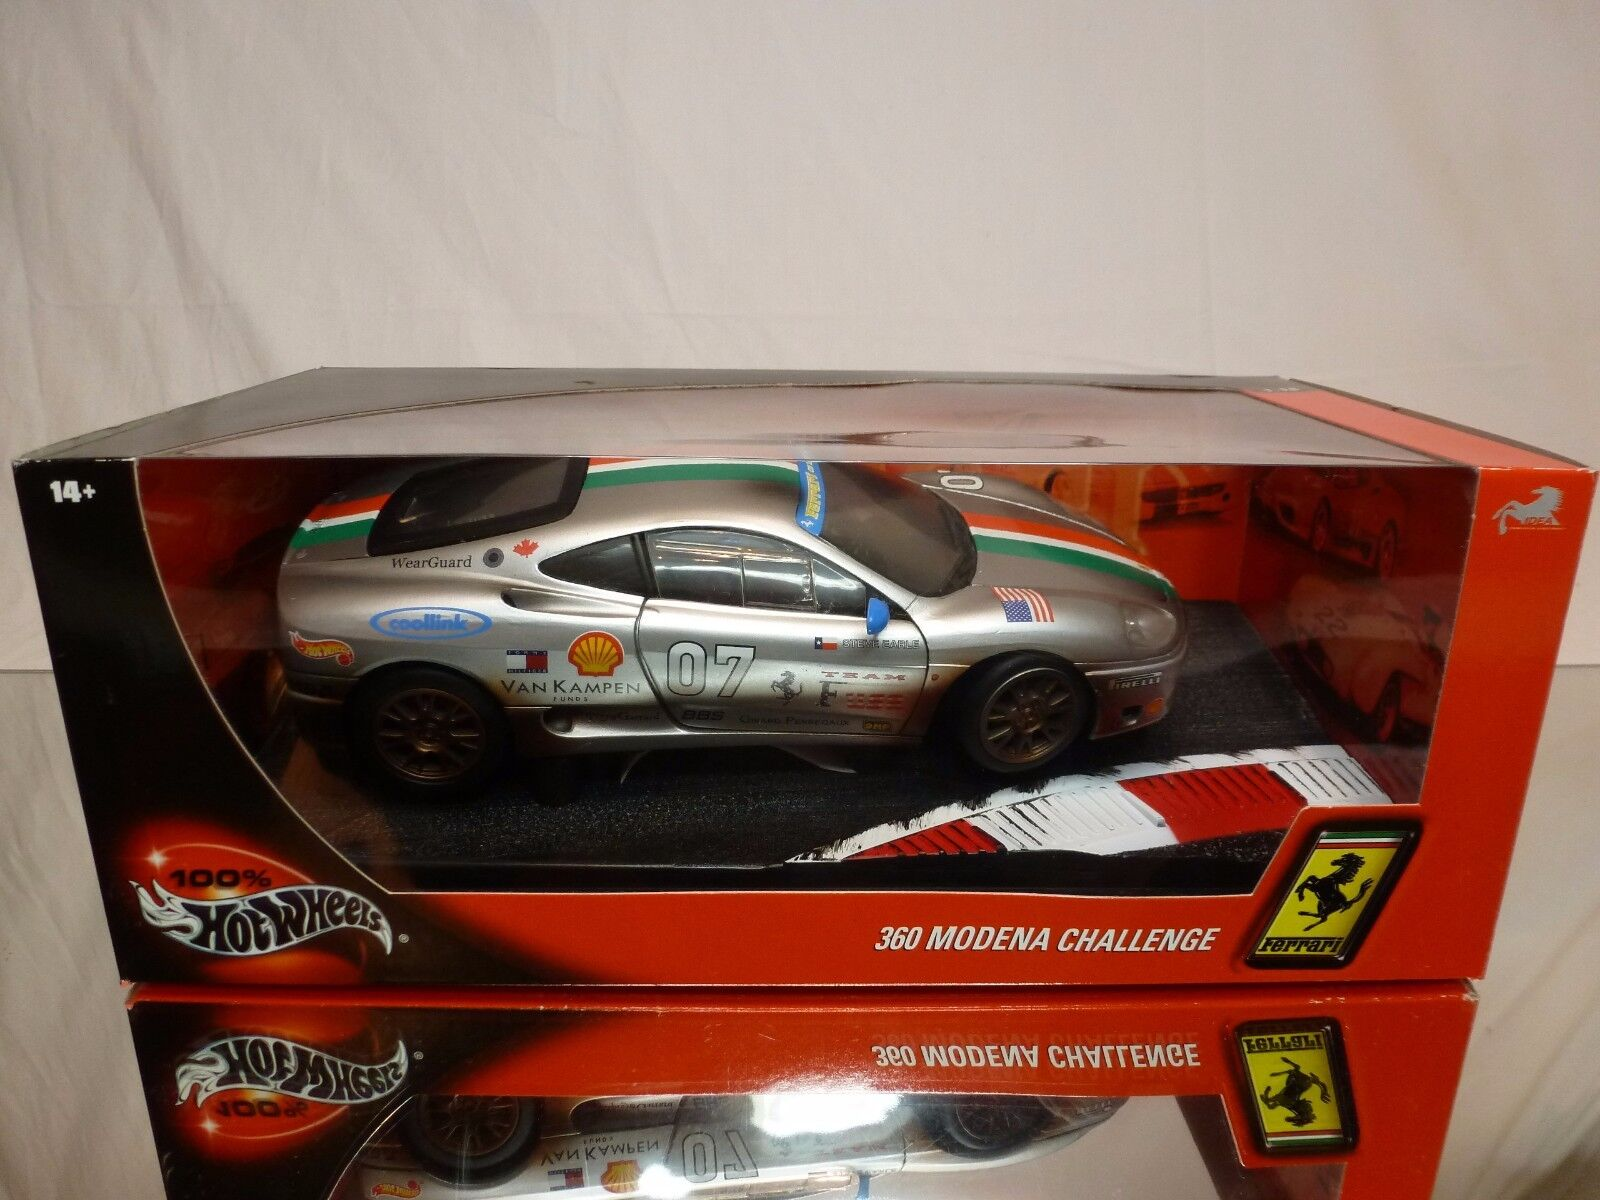 HOT WHEELS 29751 FERRARI 360 MODENA CHALLENGE GREY 1 18 - EXCELLENT IN BOX